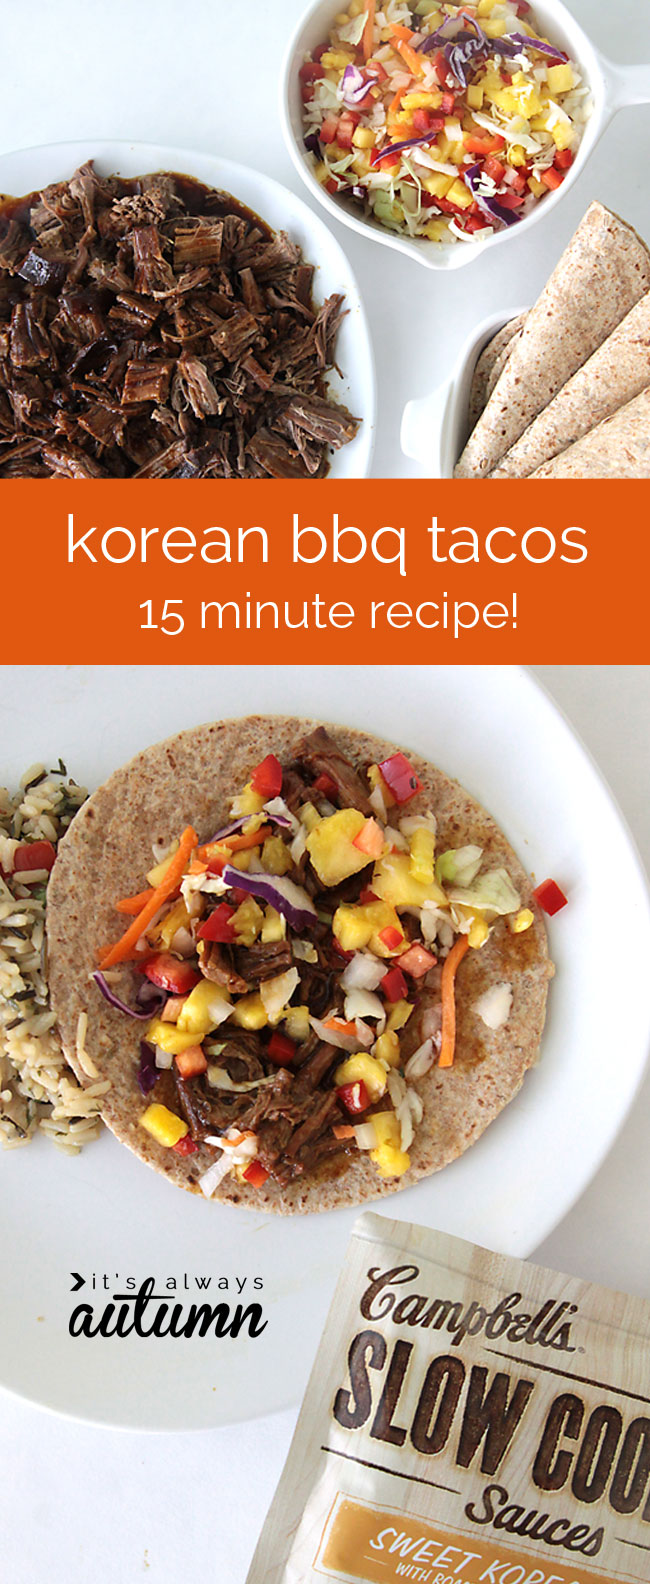 sweet korean bbq tacos are so easy to make in the slow cooker - they only take 15 minutes of prep time - and even the kids will love them!